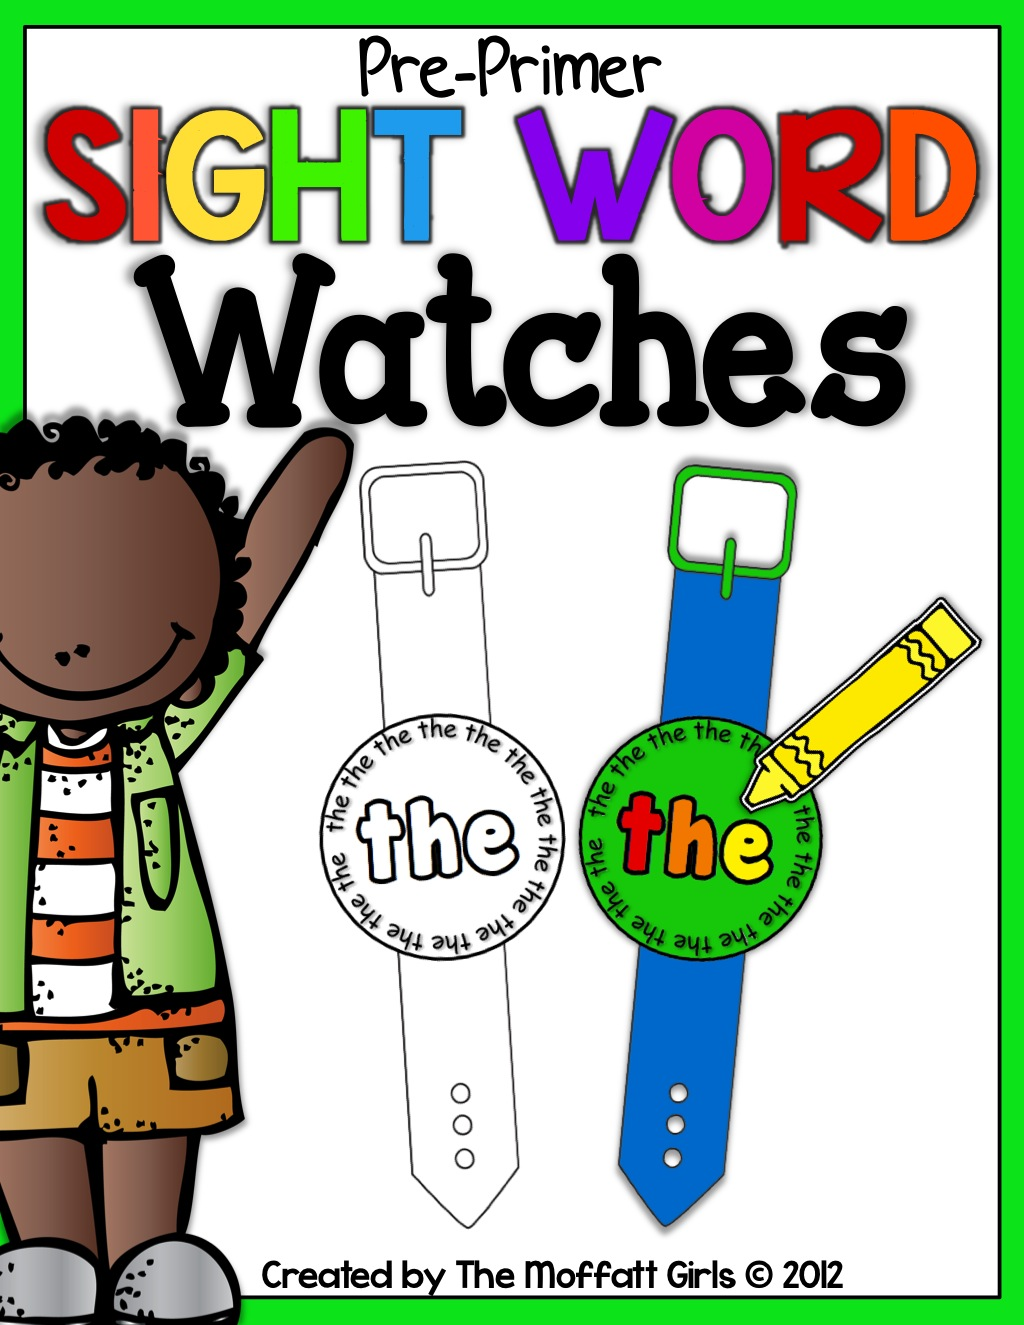 Time For Sight Words Watches